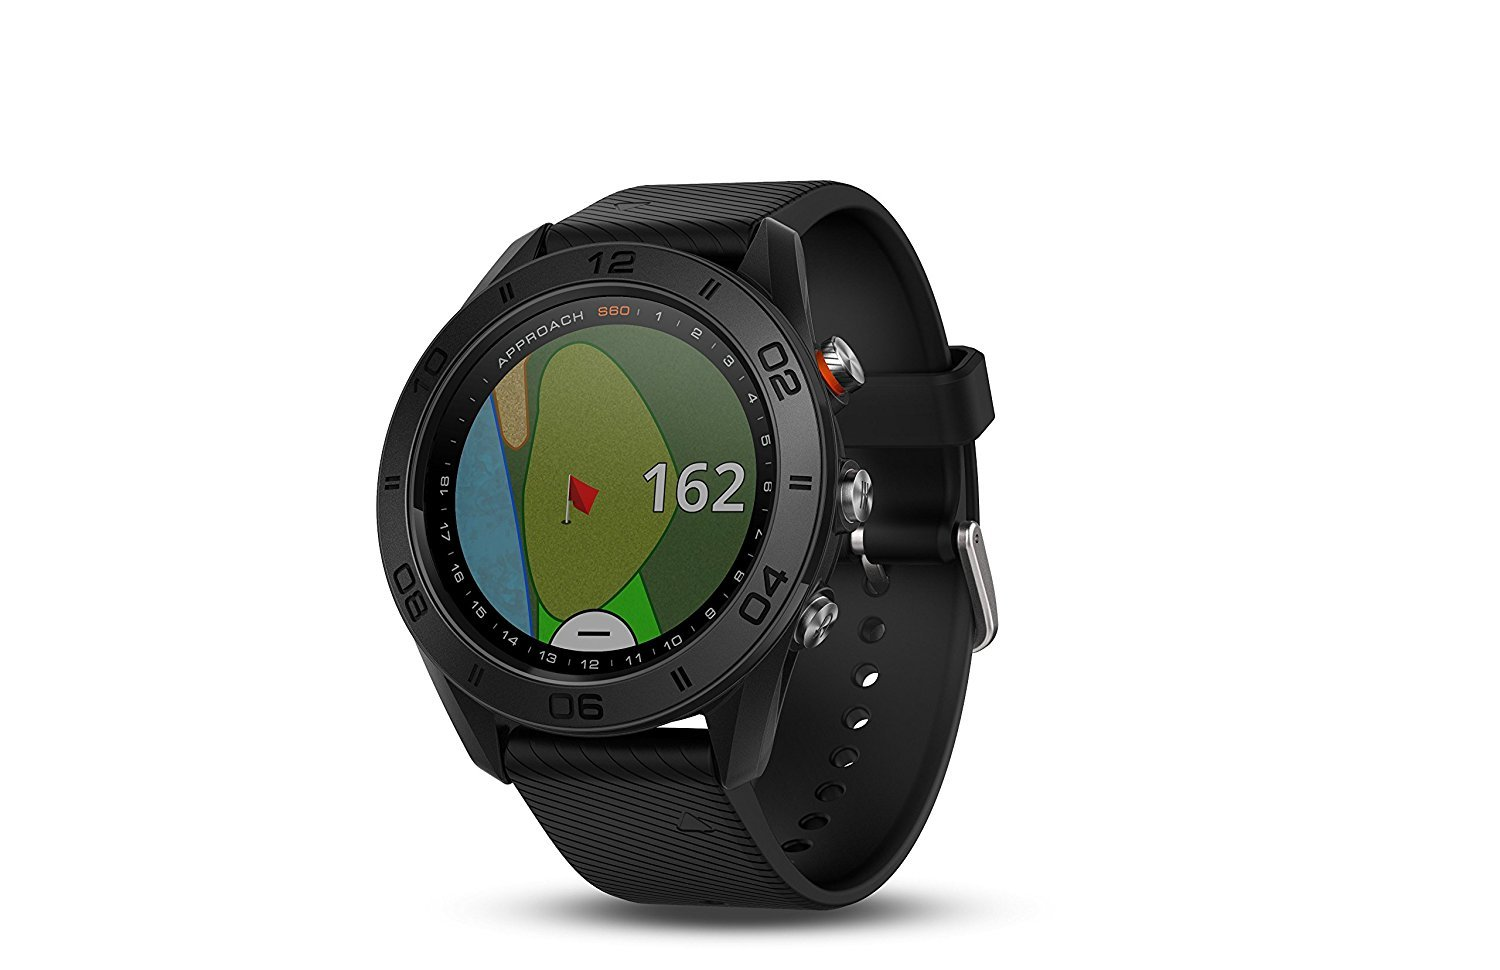 Garmin Approach S60, Premium GPS Golf Watch with Touchscreen Display and Full Color CourseView Mapping, Black w/Silicone Band + 1 Year Extended Warranty by Garmin